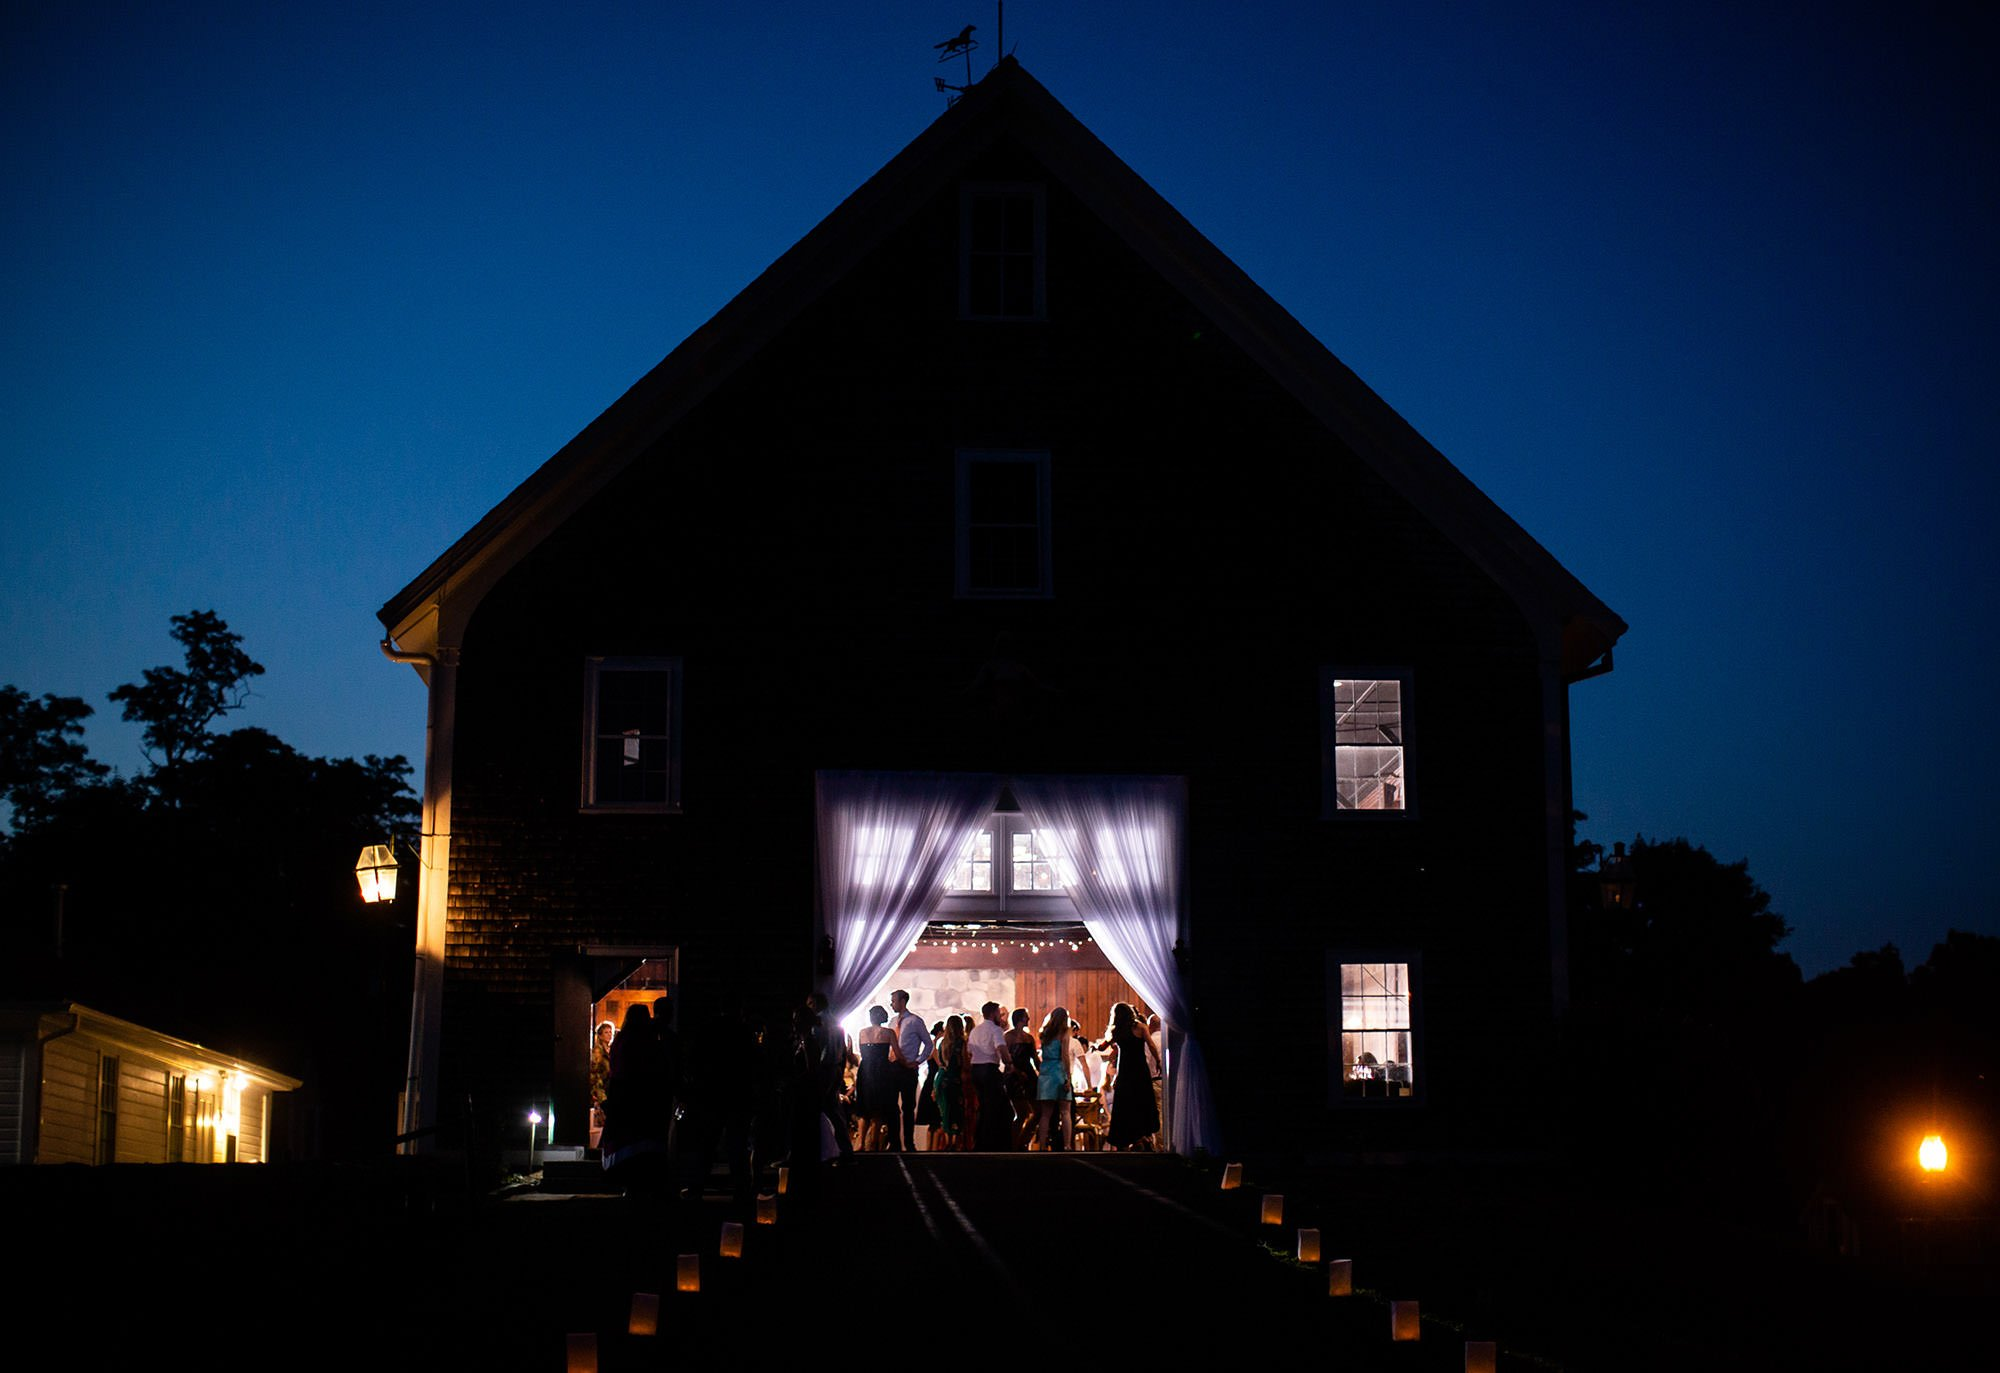 Sunset during the wedding reception at Mount Hope Farm's barn.